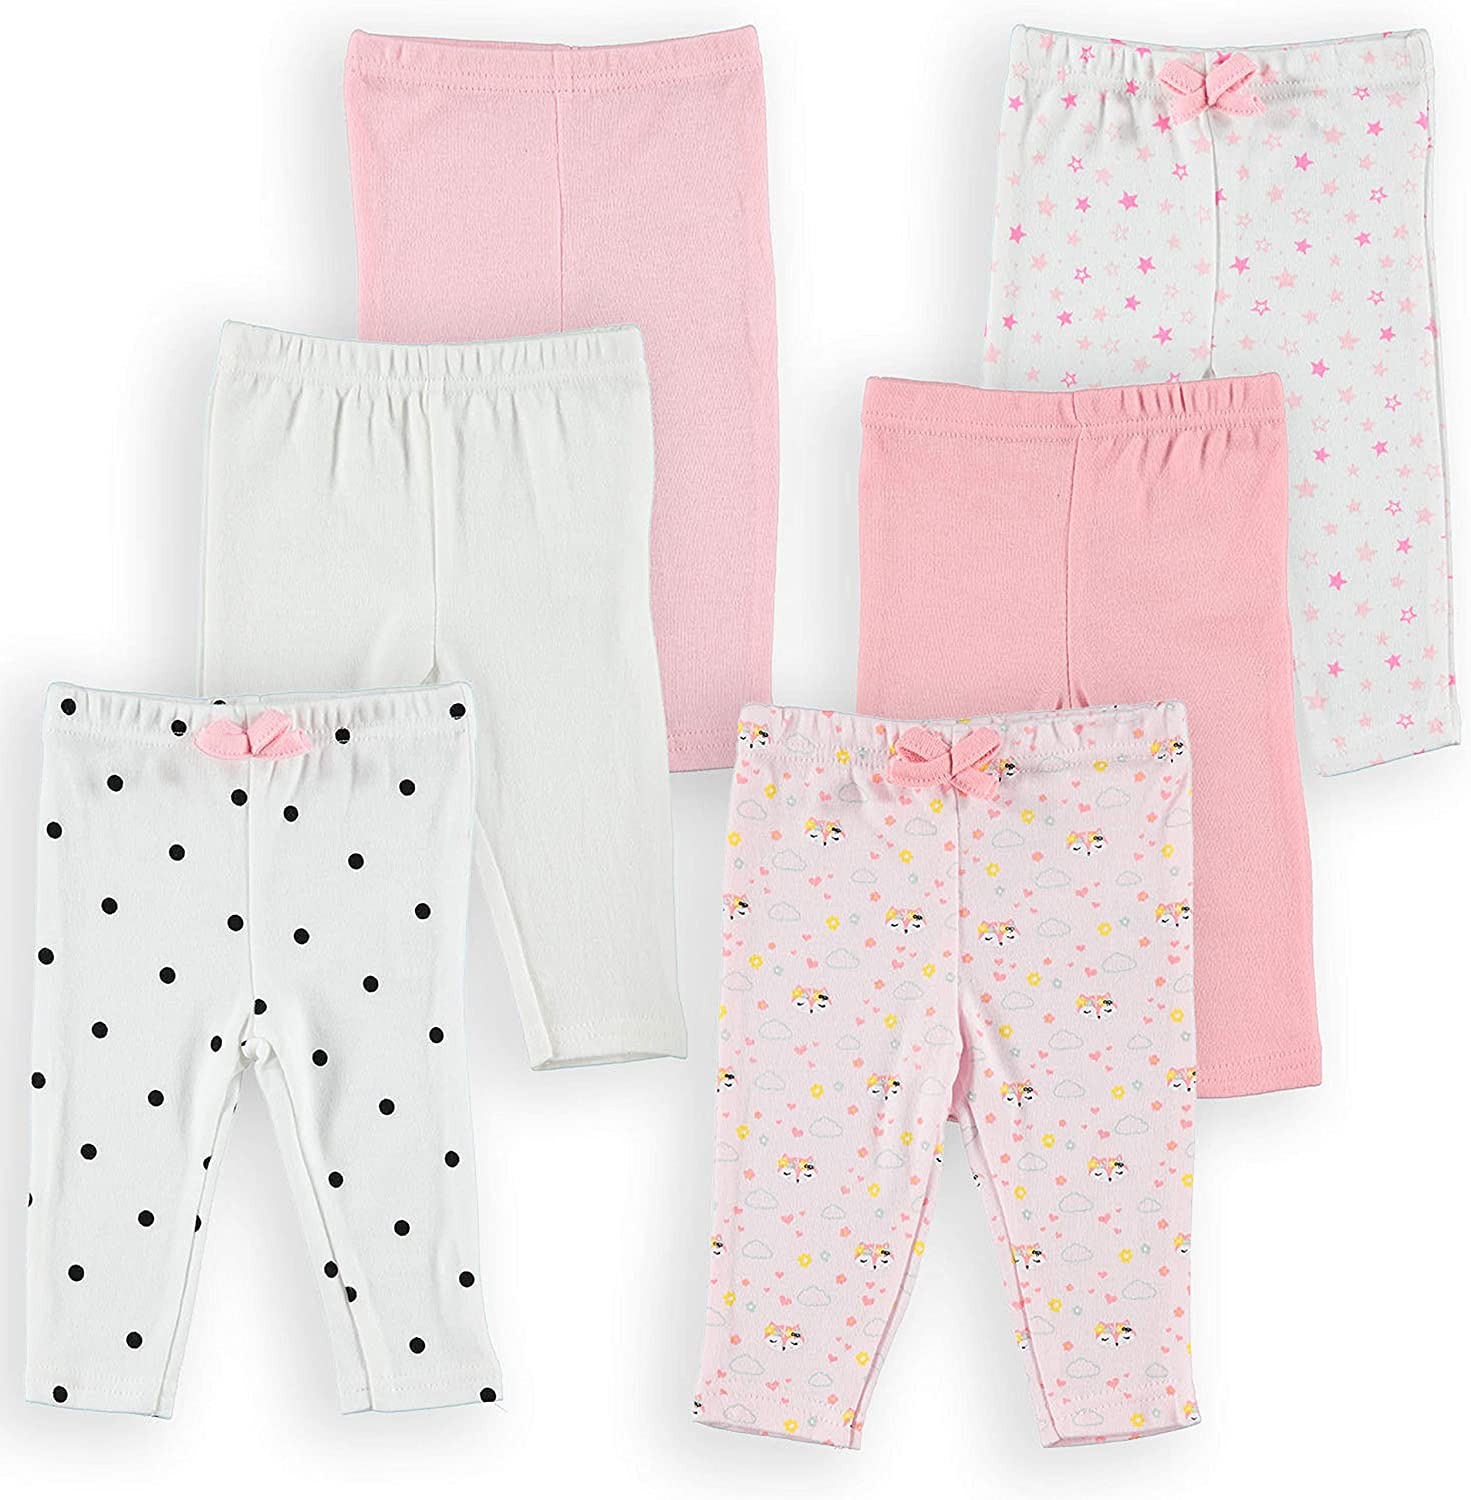 Baby Set of 6 Leggings Funny Bunny 6 Pack Newborn Pants Baby Boys Girls Ultra Soft 100/% Cotton Solid and Printed Pants